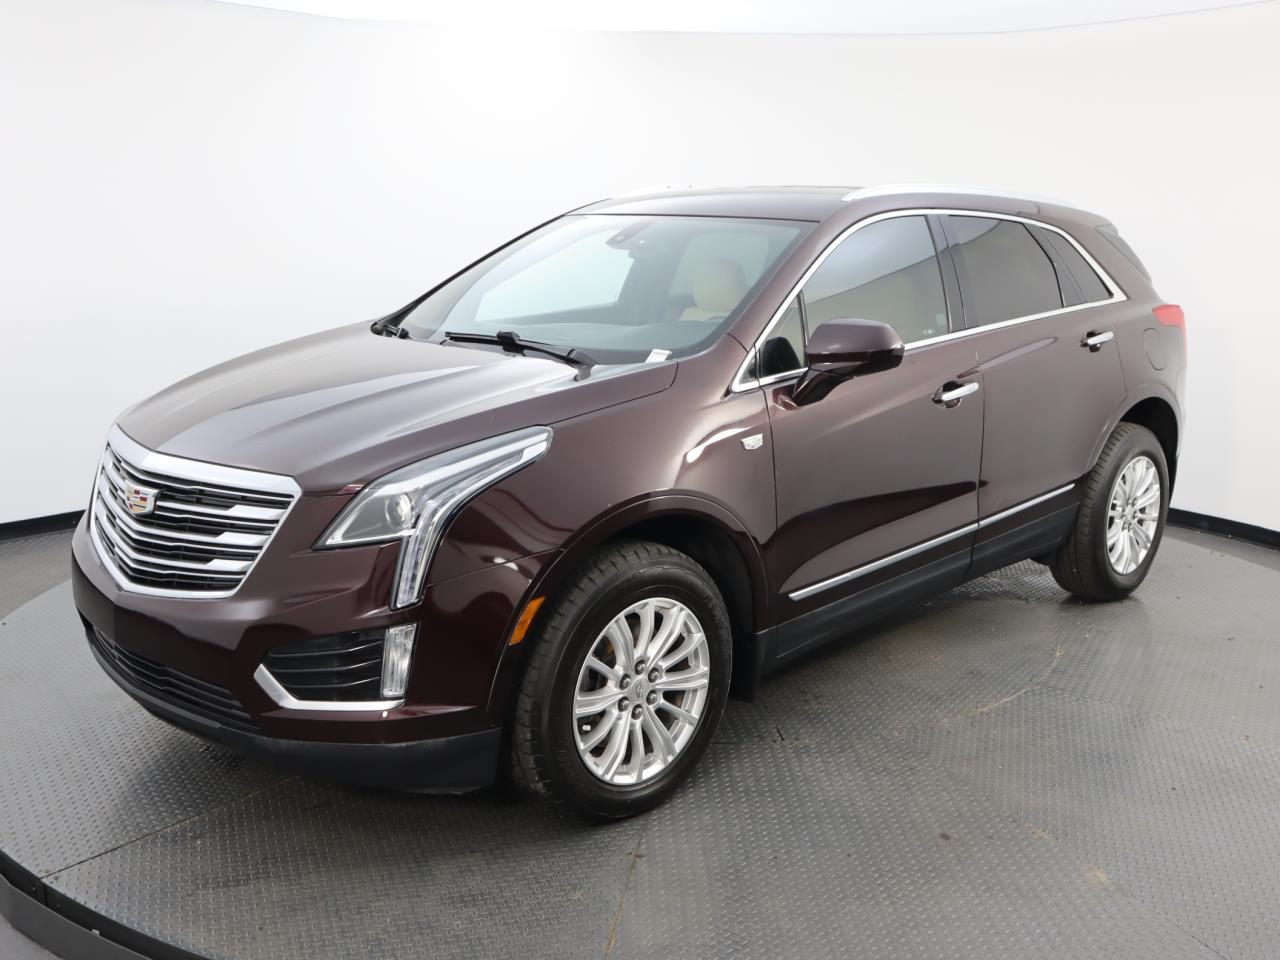 Used CADILLAC XT5 2017 MARGATE FWD